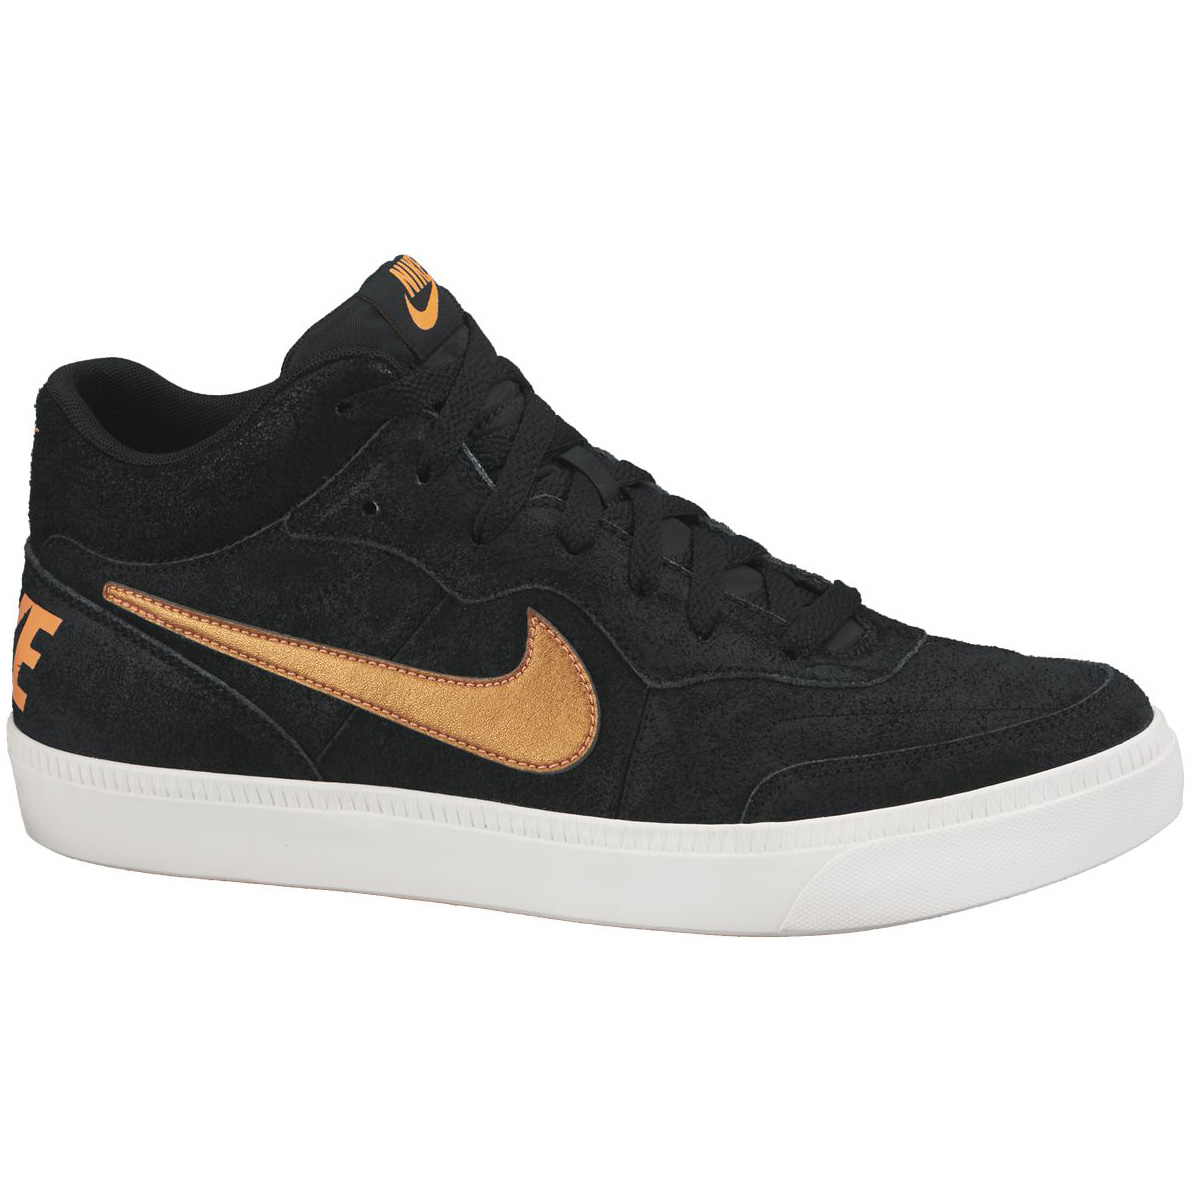 Nike NSW Tiempo 94 Mid Trainers Black